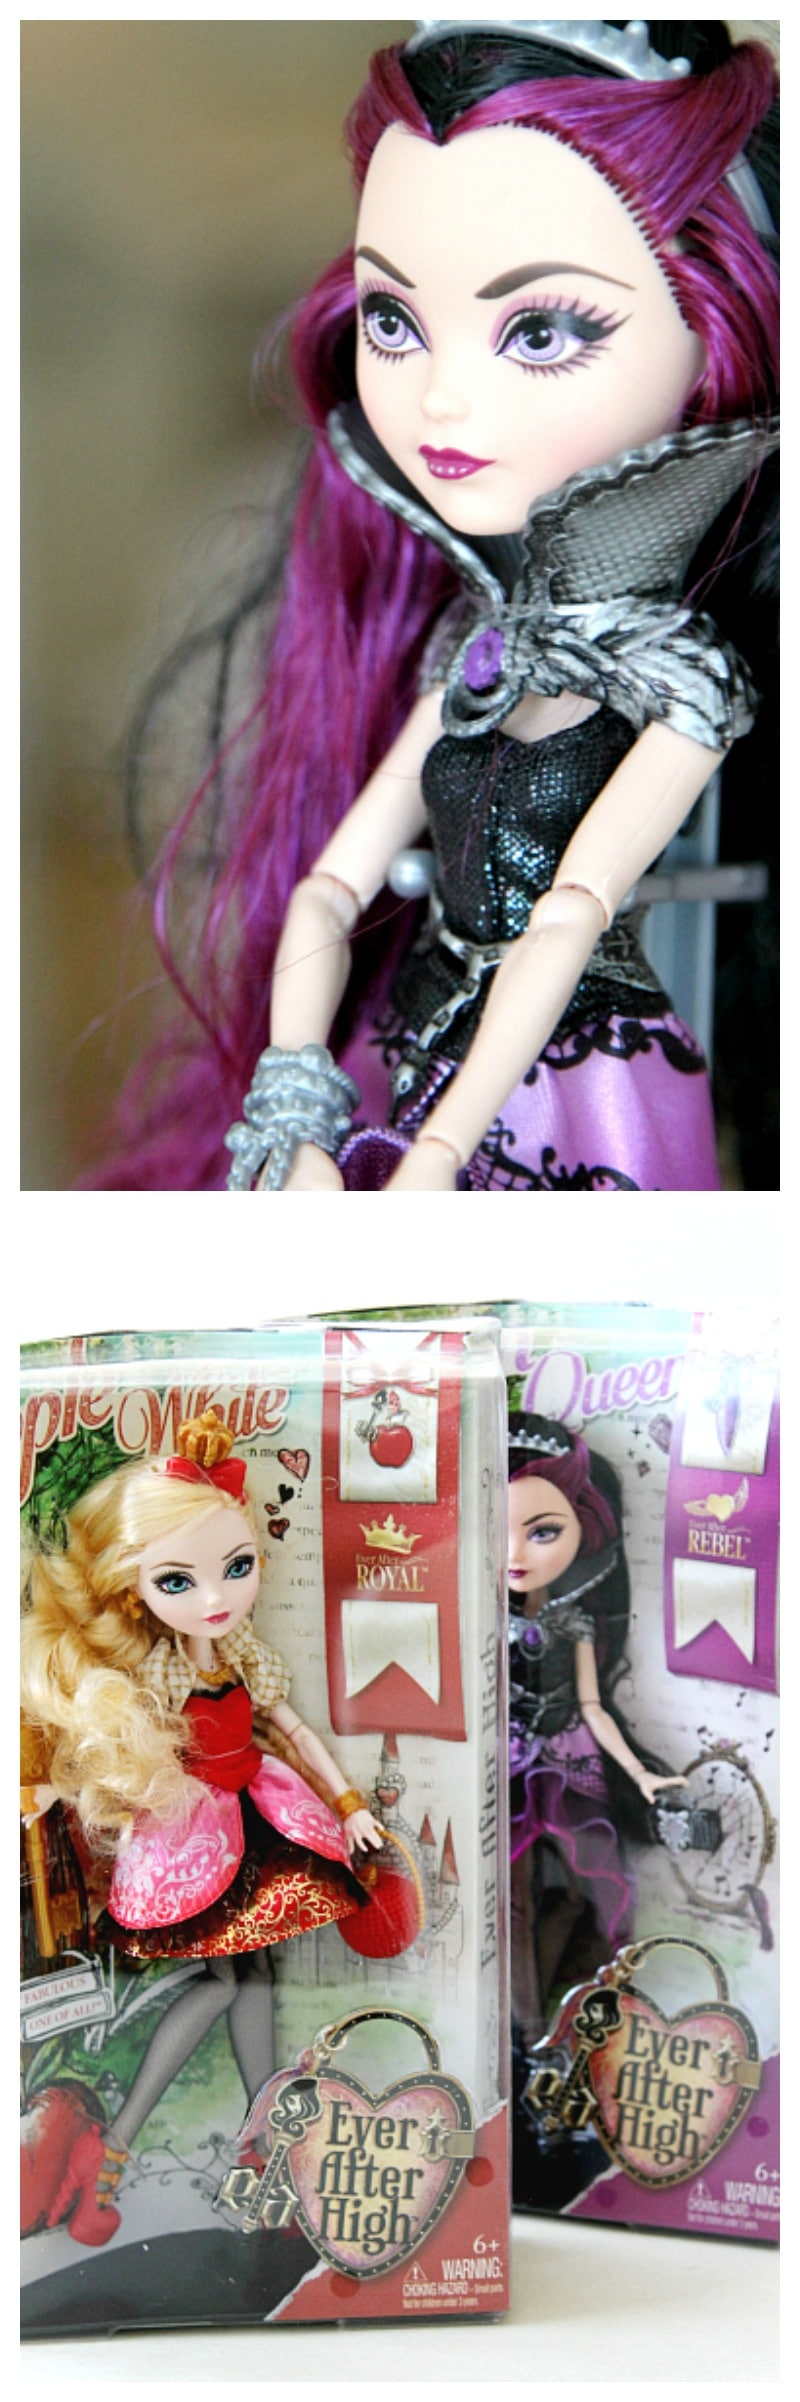 Ever After High Briar Beauty Dolls | Royal & Rebel Dolls | Christmas gifts for Girls